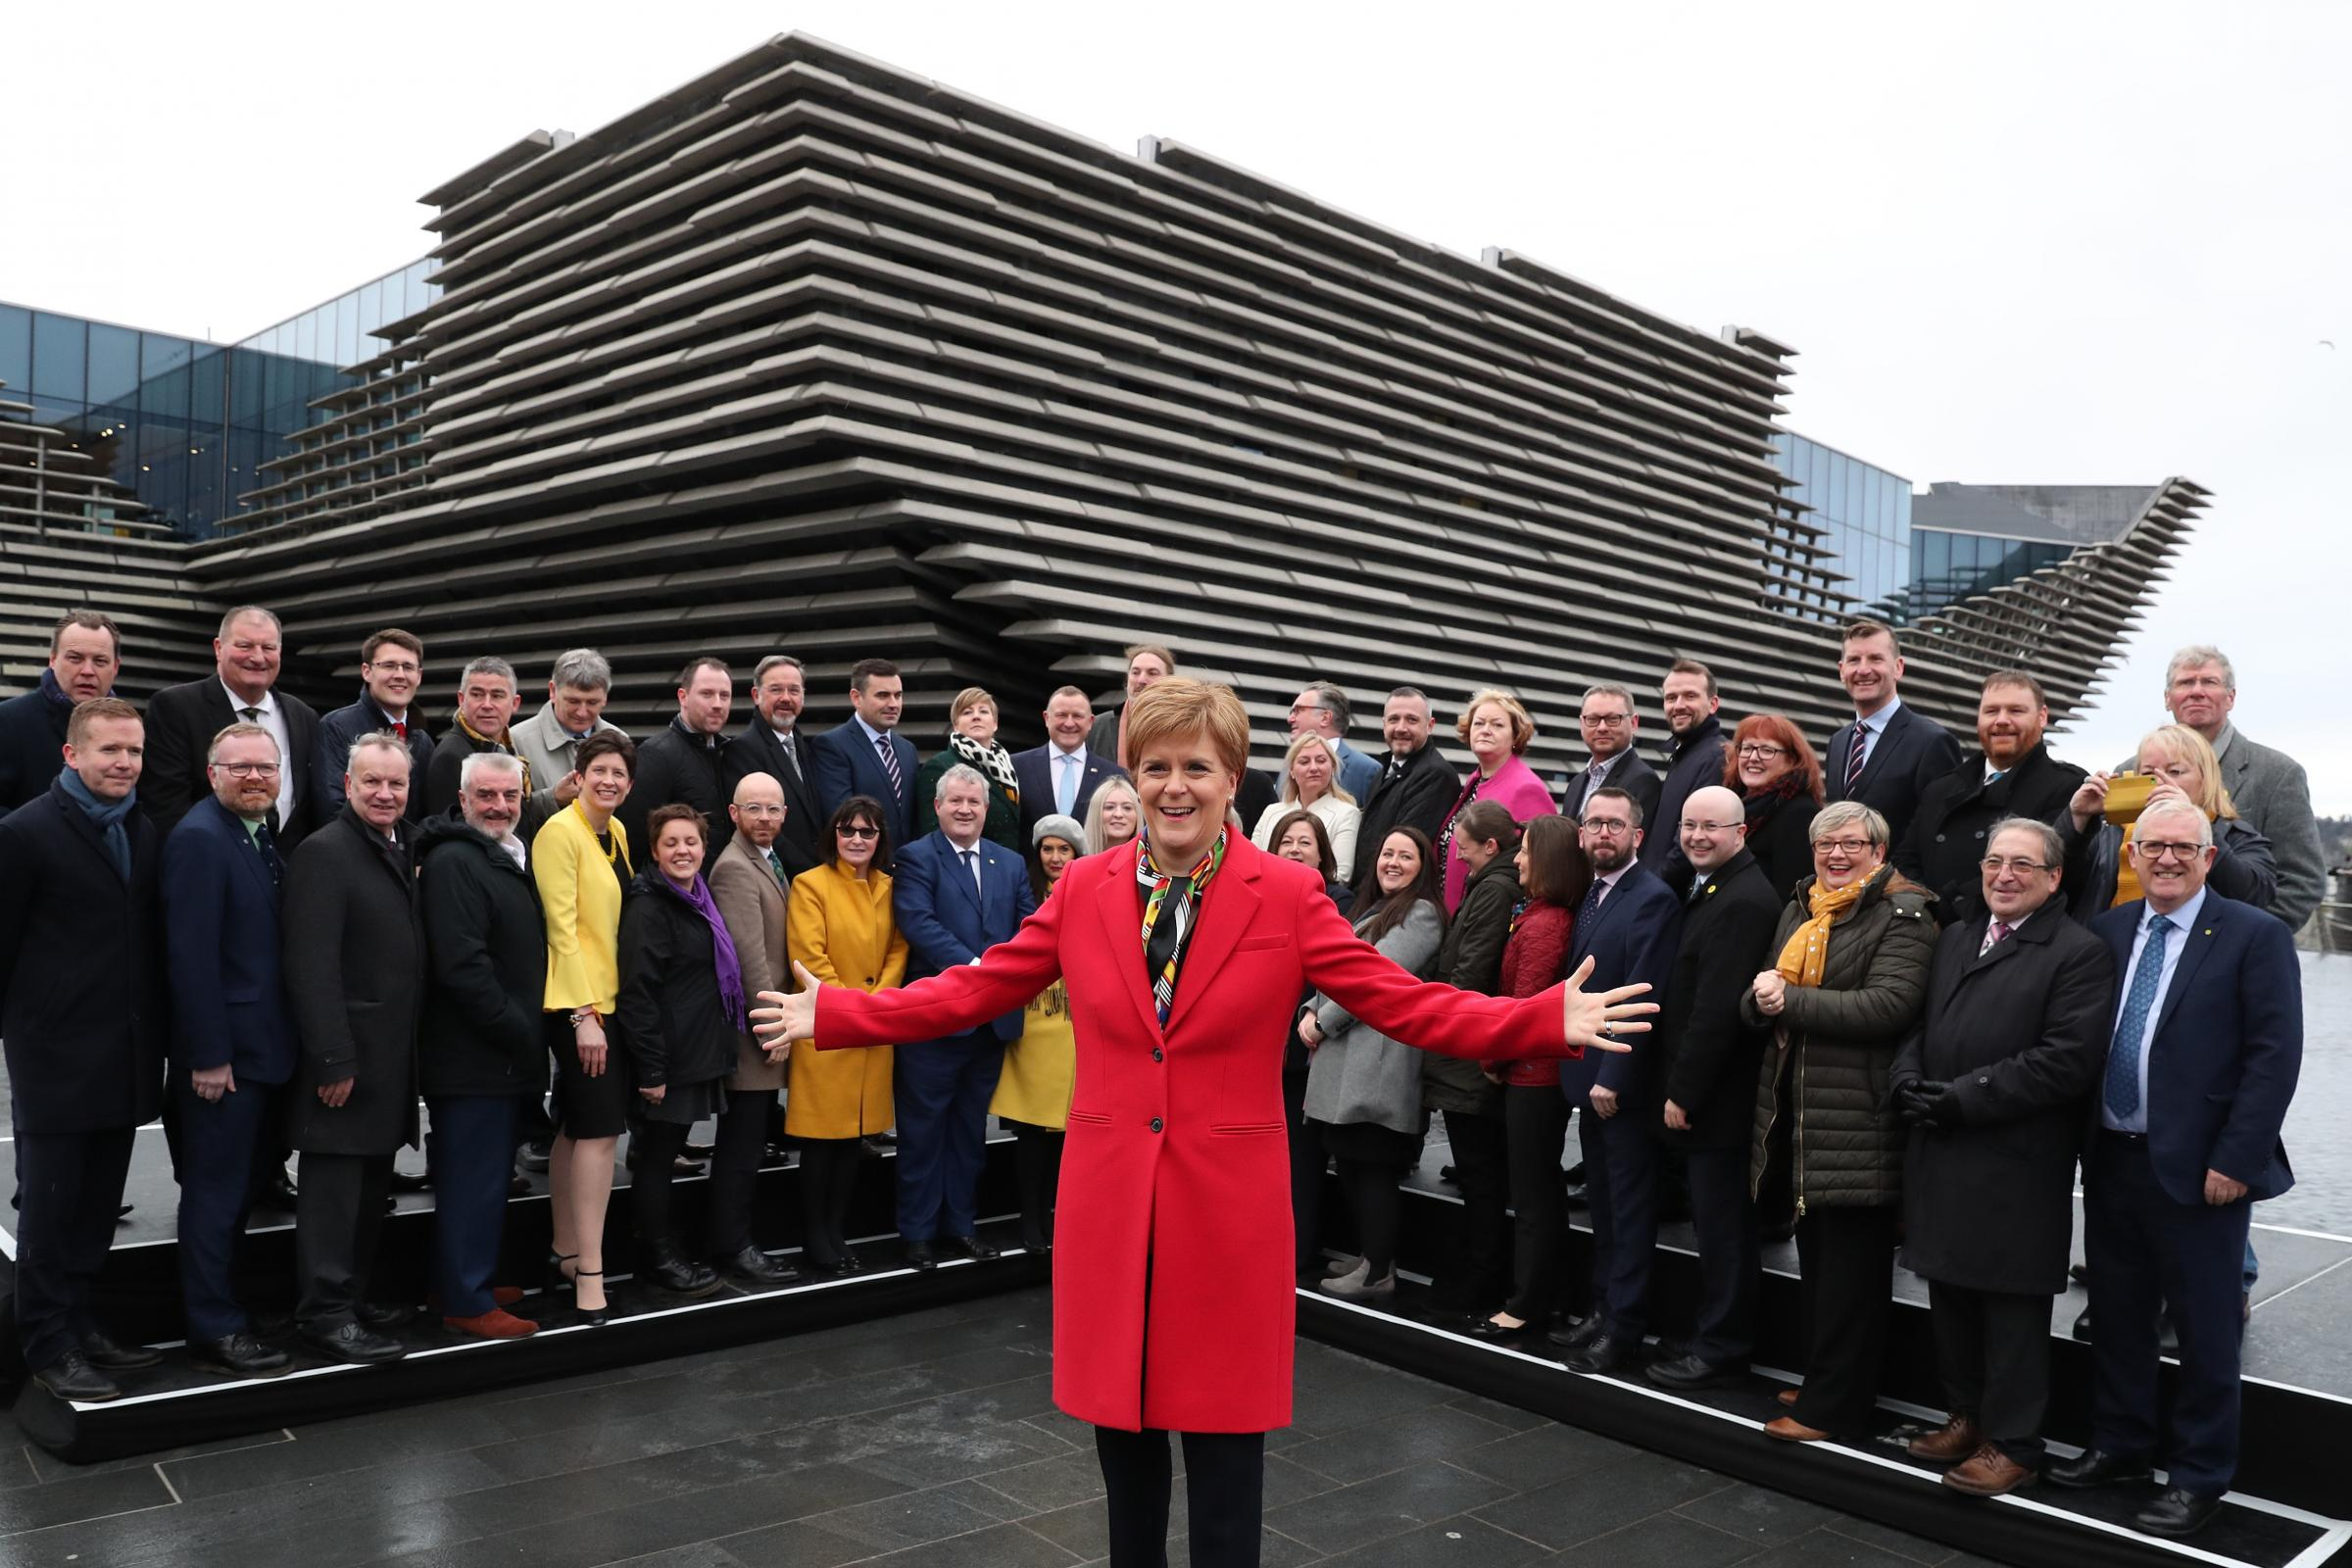 SNP set to win record 70 seats in Holyrood, putting independence back on agenda